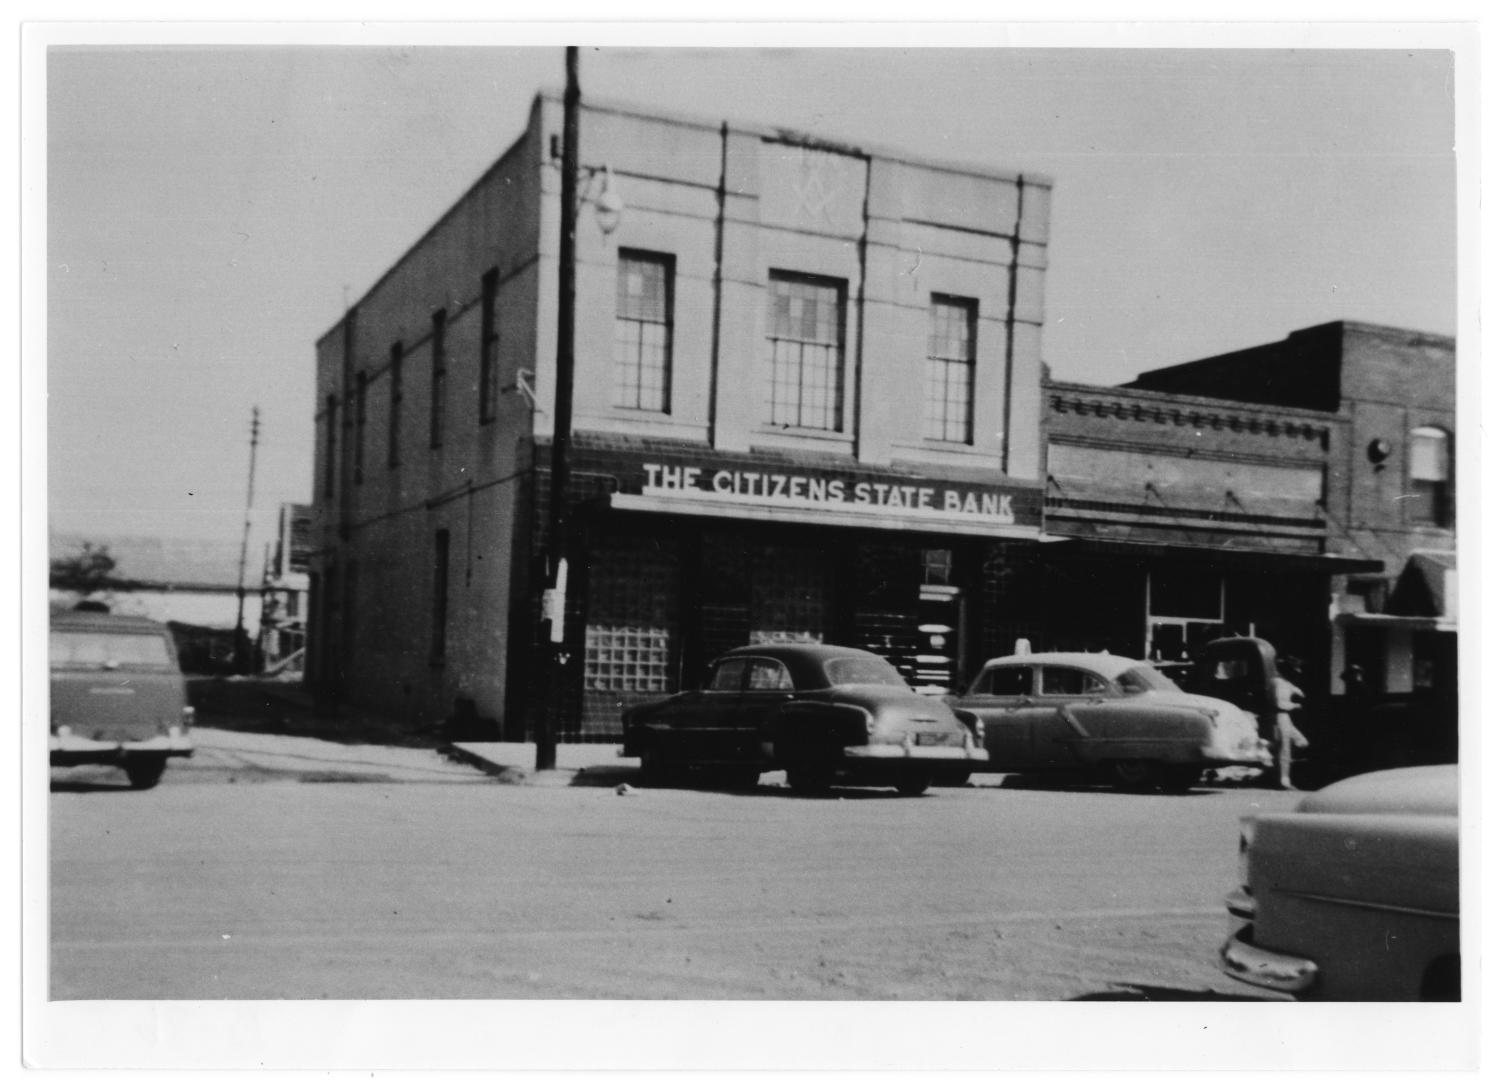 """Citizens State Bank, 1954, Photograph of an exterior view of Citizens State Bank on Main Street in Richardson, Texas. The bank is a brick building with a sign that says """"The Citizens State Bank"""" over an awning, and a Freemasonry symbol at the top. Other buildings are connected to the right of it. Cars are parked outside the building.,"""